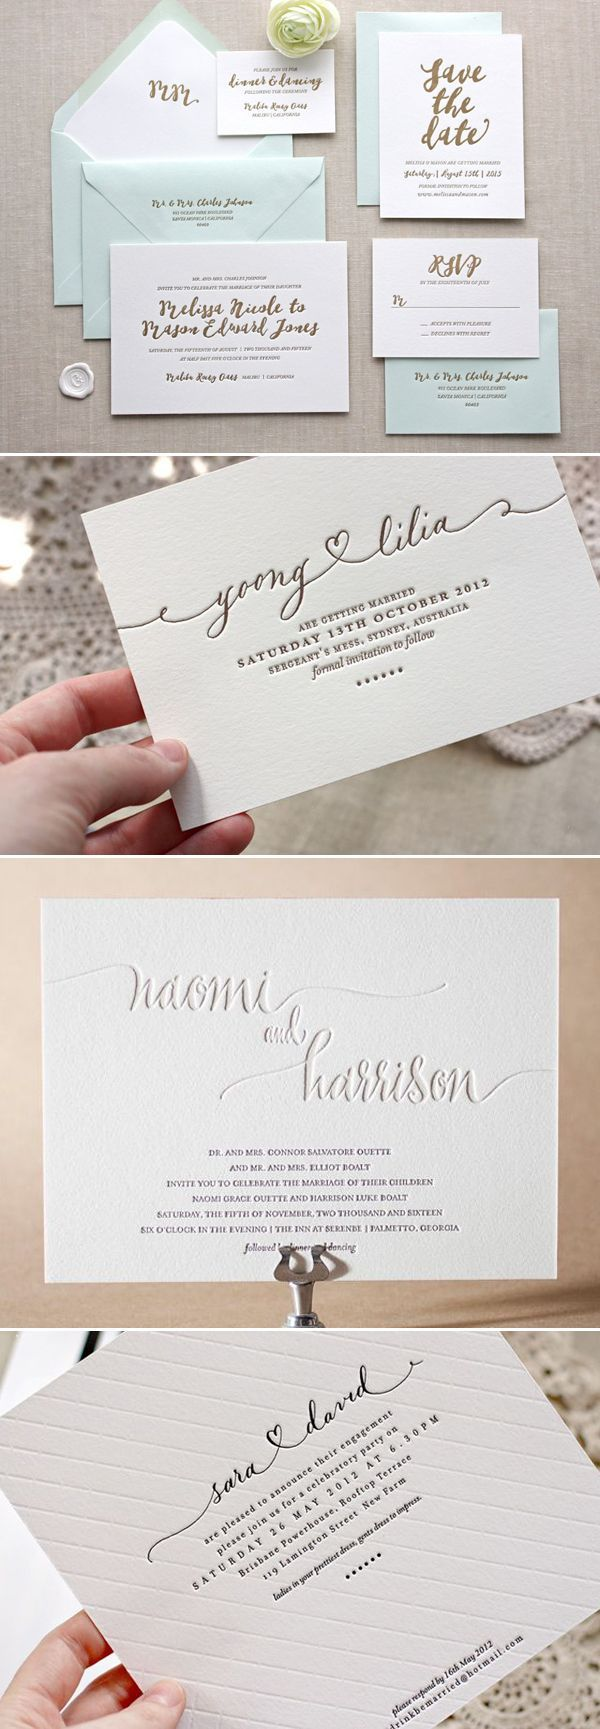 Best 25 Beautiful wedding invitations ideas on Pinterest